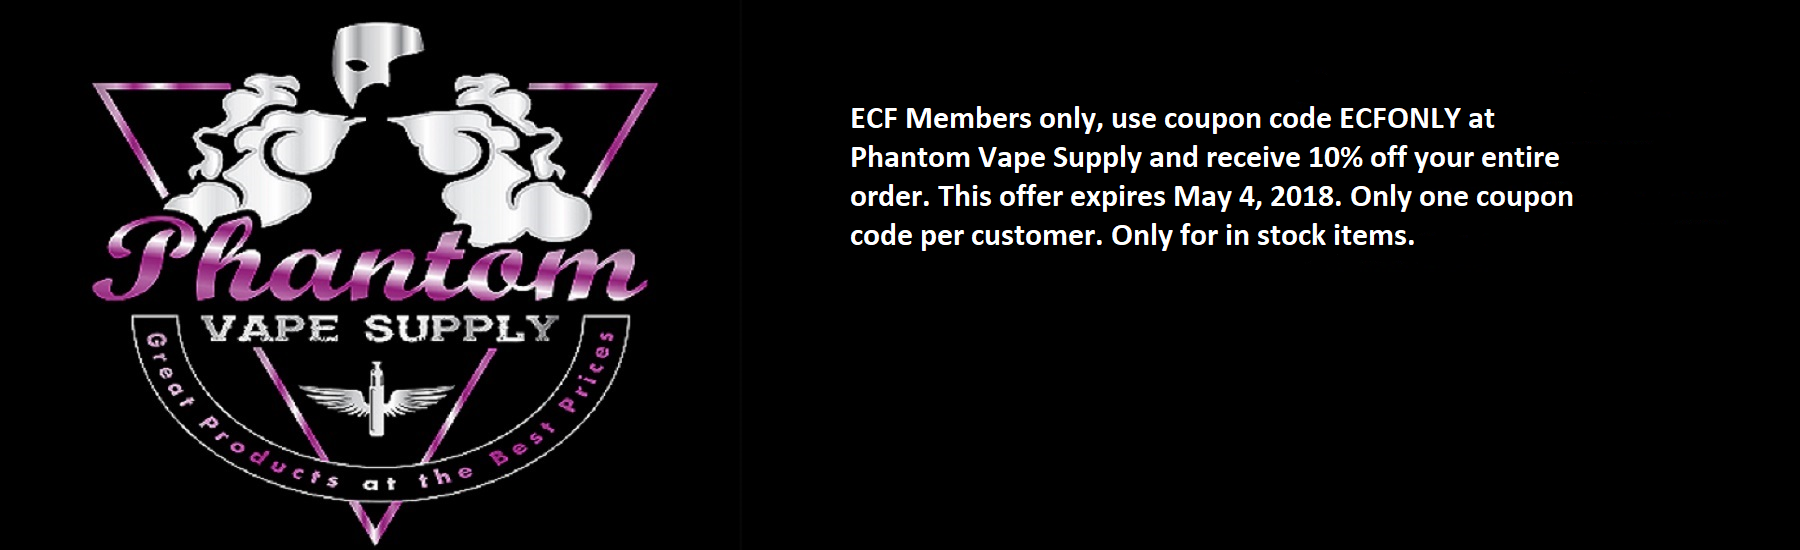 Phantom Vape Supply-ECF Coupon.png